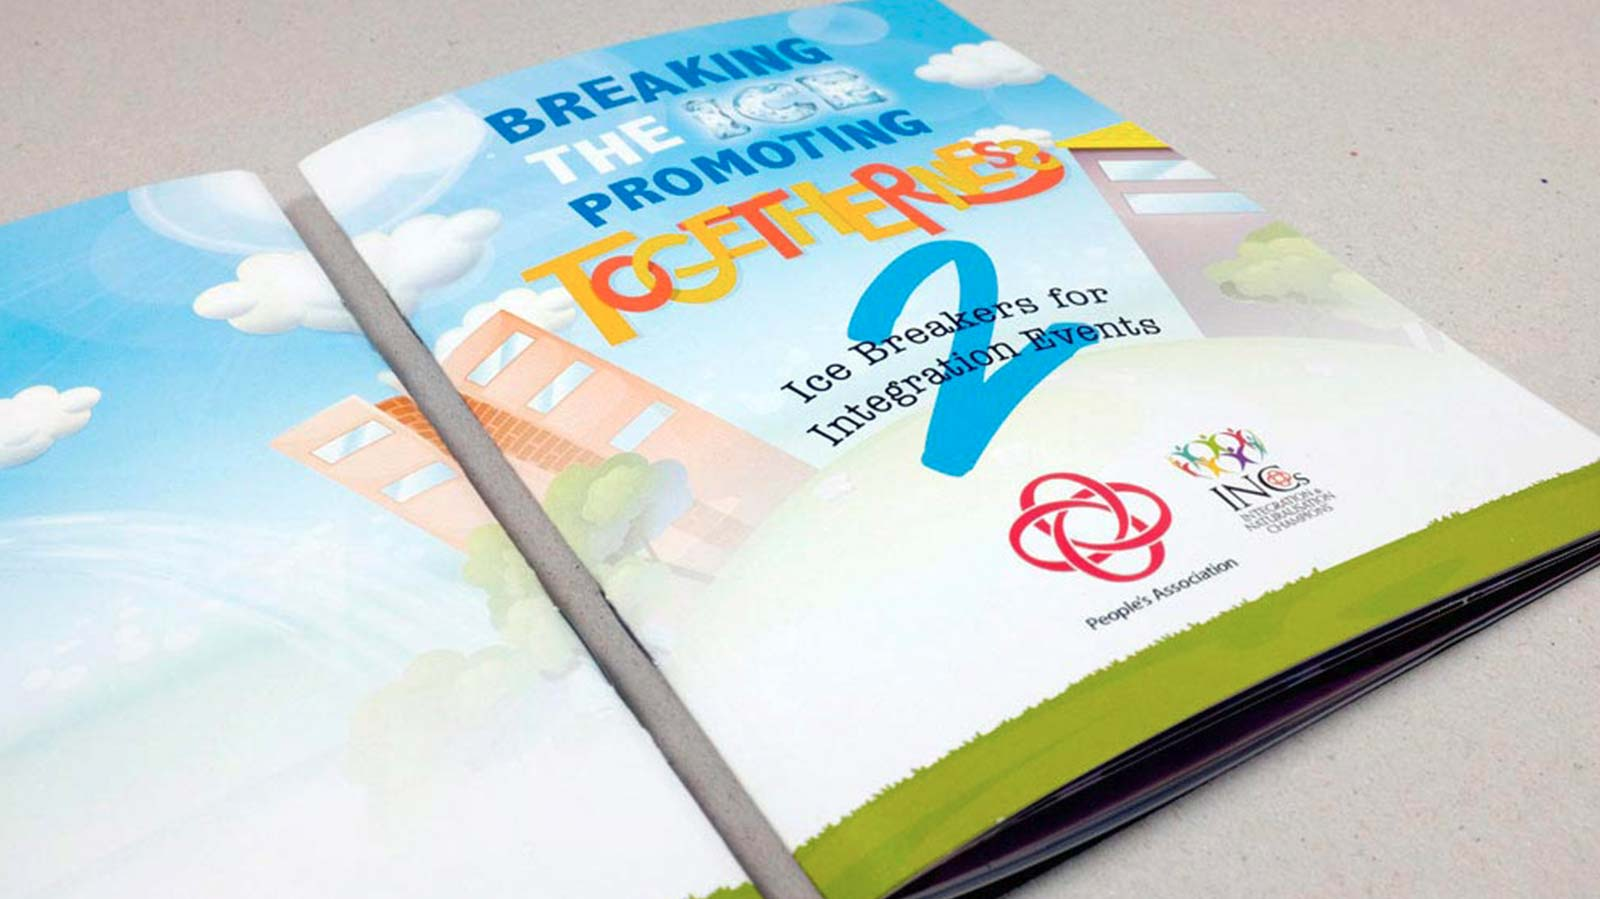 Game Booklet by People's Association